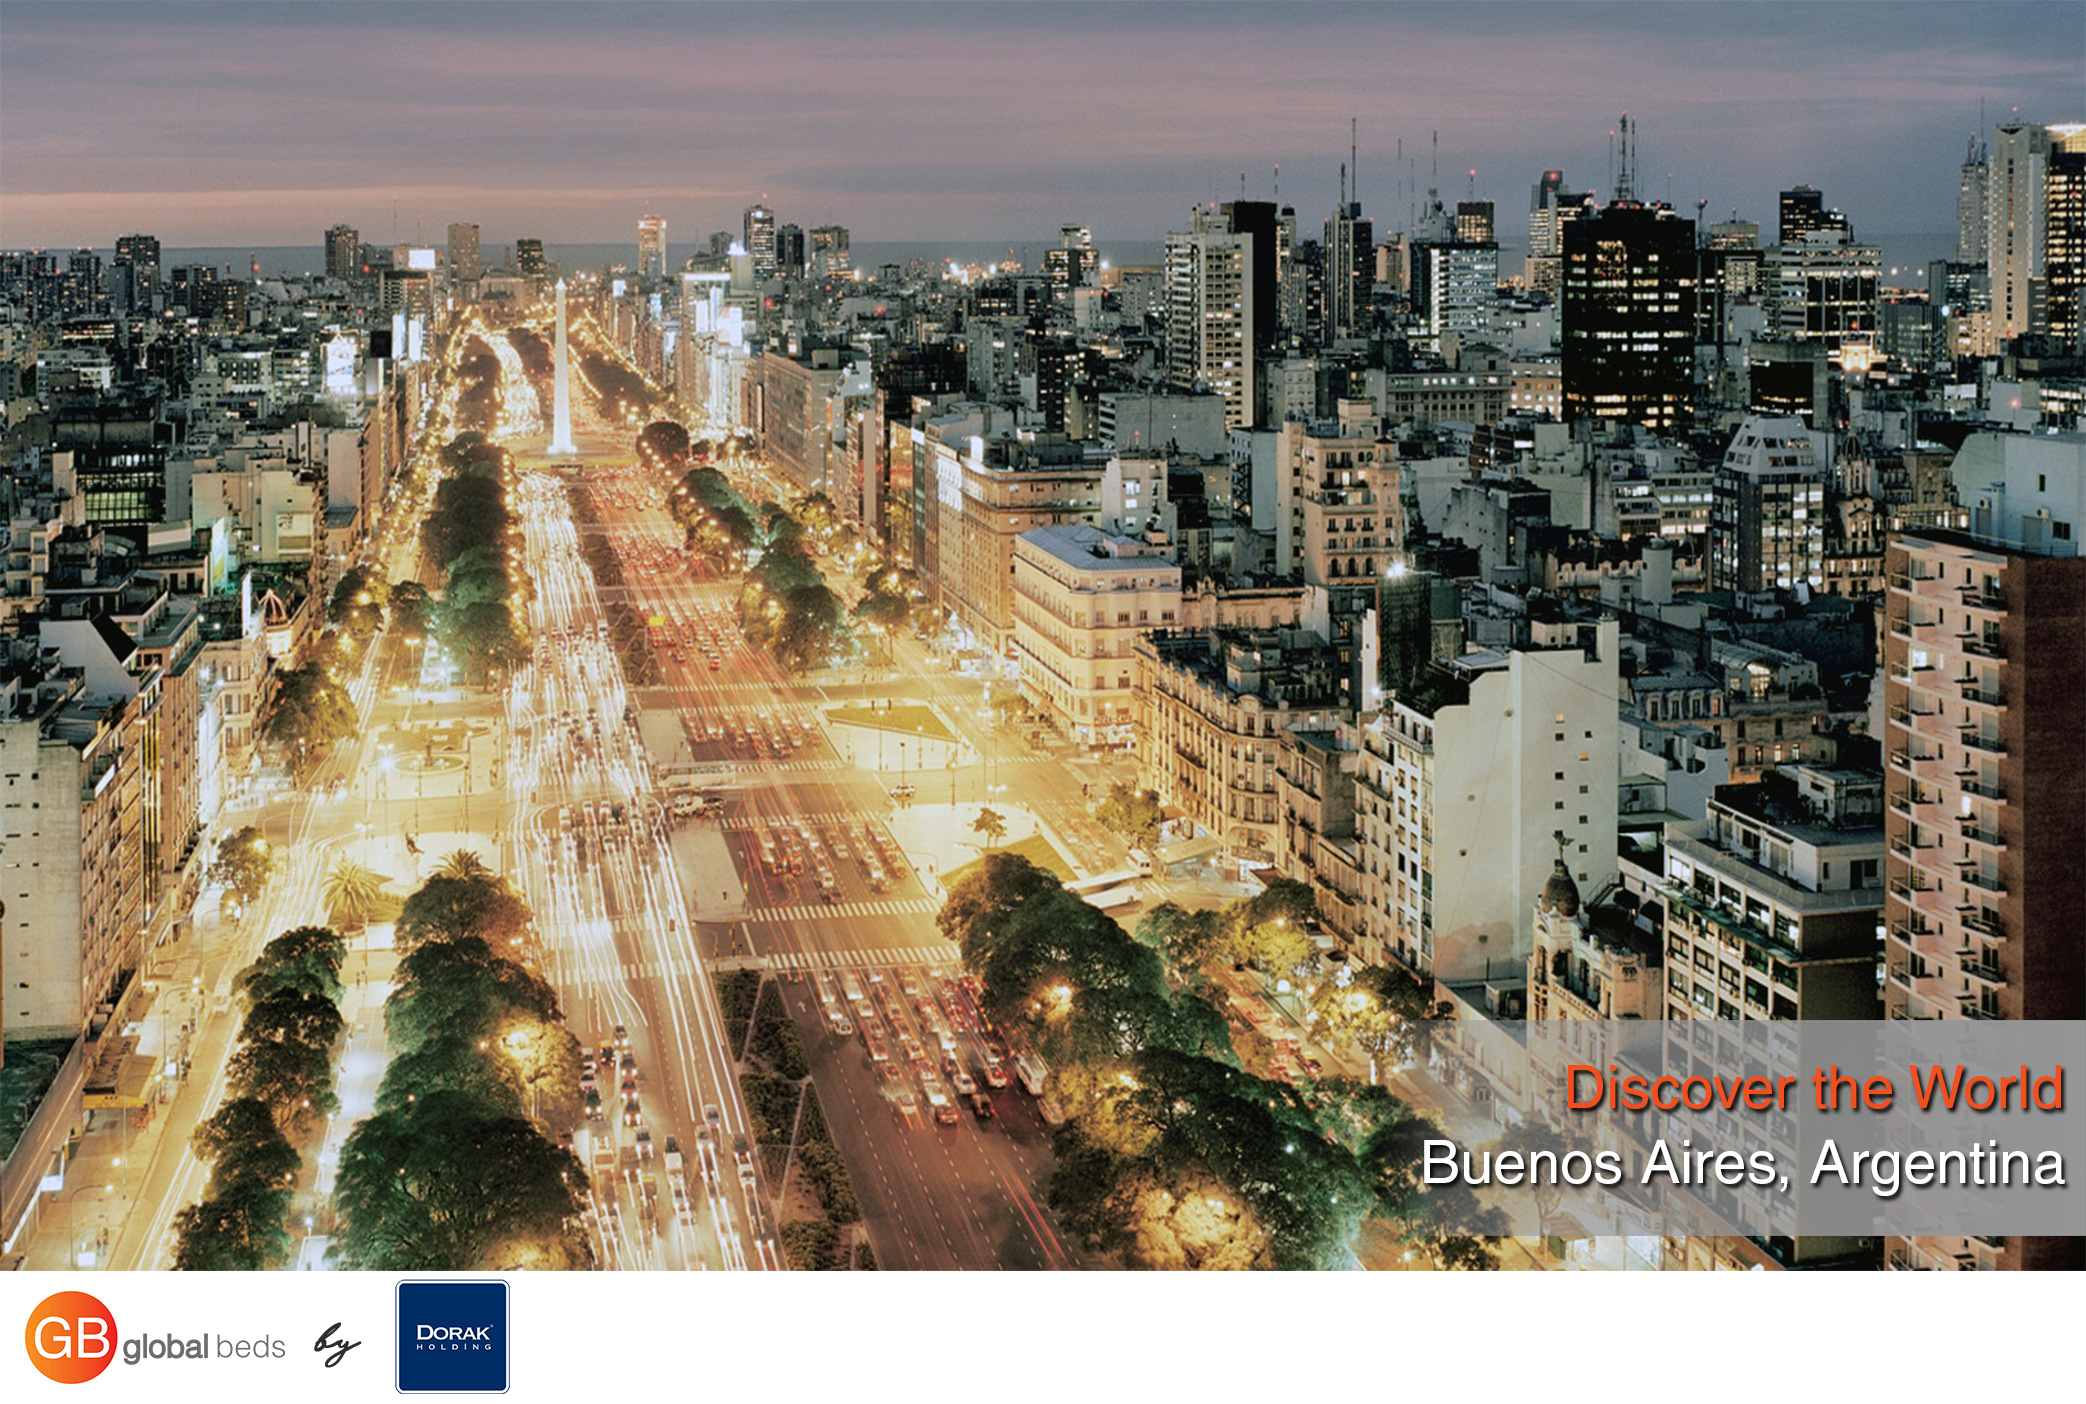 """The name """"Argentina"""" comes from the Latin word for silver, argentum. The original European settlers believed the country was full of silver.  #onlinebookingsystem #FIT #discovertheworld #Argentina #argentinaig #argentina_ig #buenosaires #buenosairescity #Argentum #Silver #Nameorigin #instadaily #todayspost #view #viewoftheday #views #picoftheday #DorakHolding #GB #GlobalBeds"""